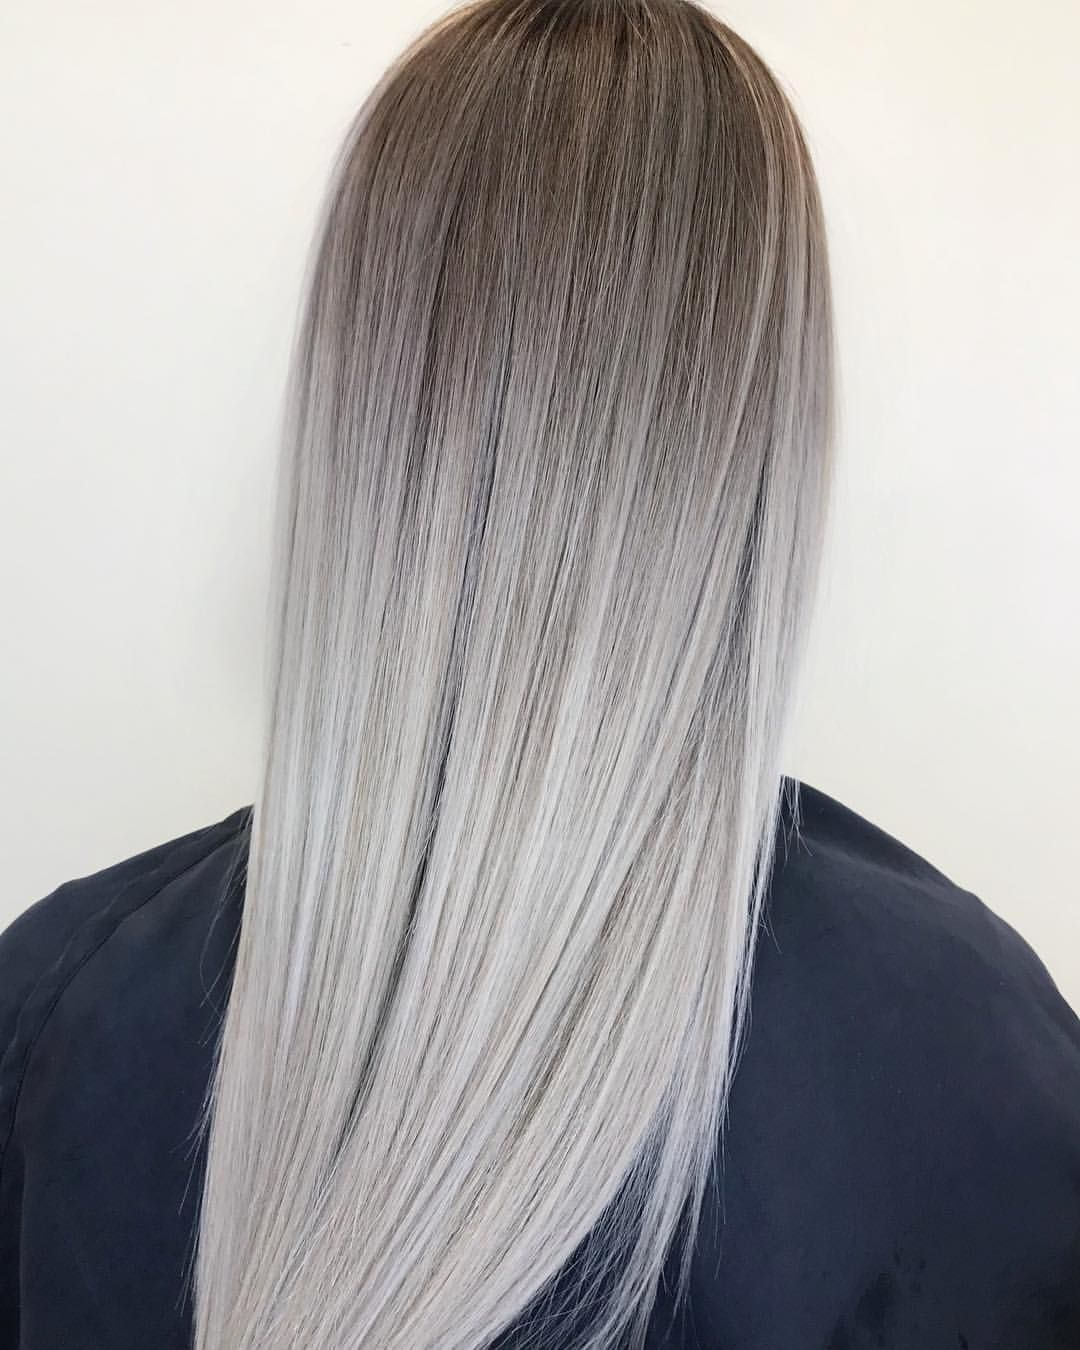 """Lisa Walker on Instagram: """"Morning Blend..... Converted this previous foil highlighted blonde ����to a blended bombshell ��"""""""